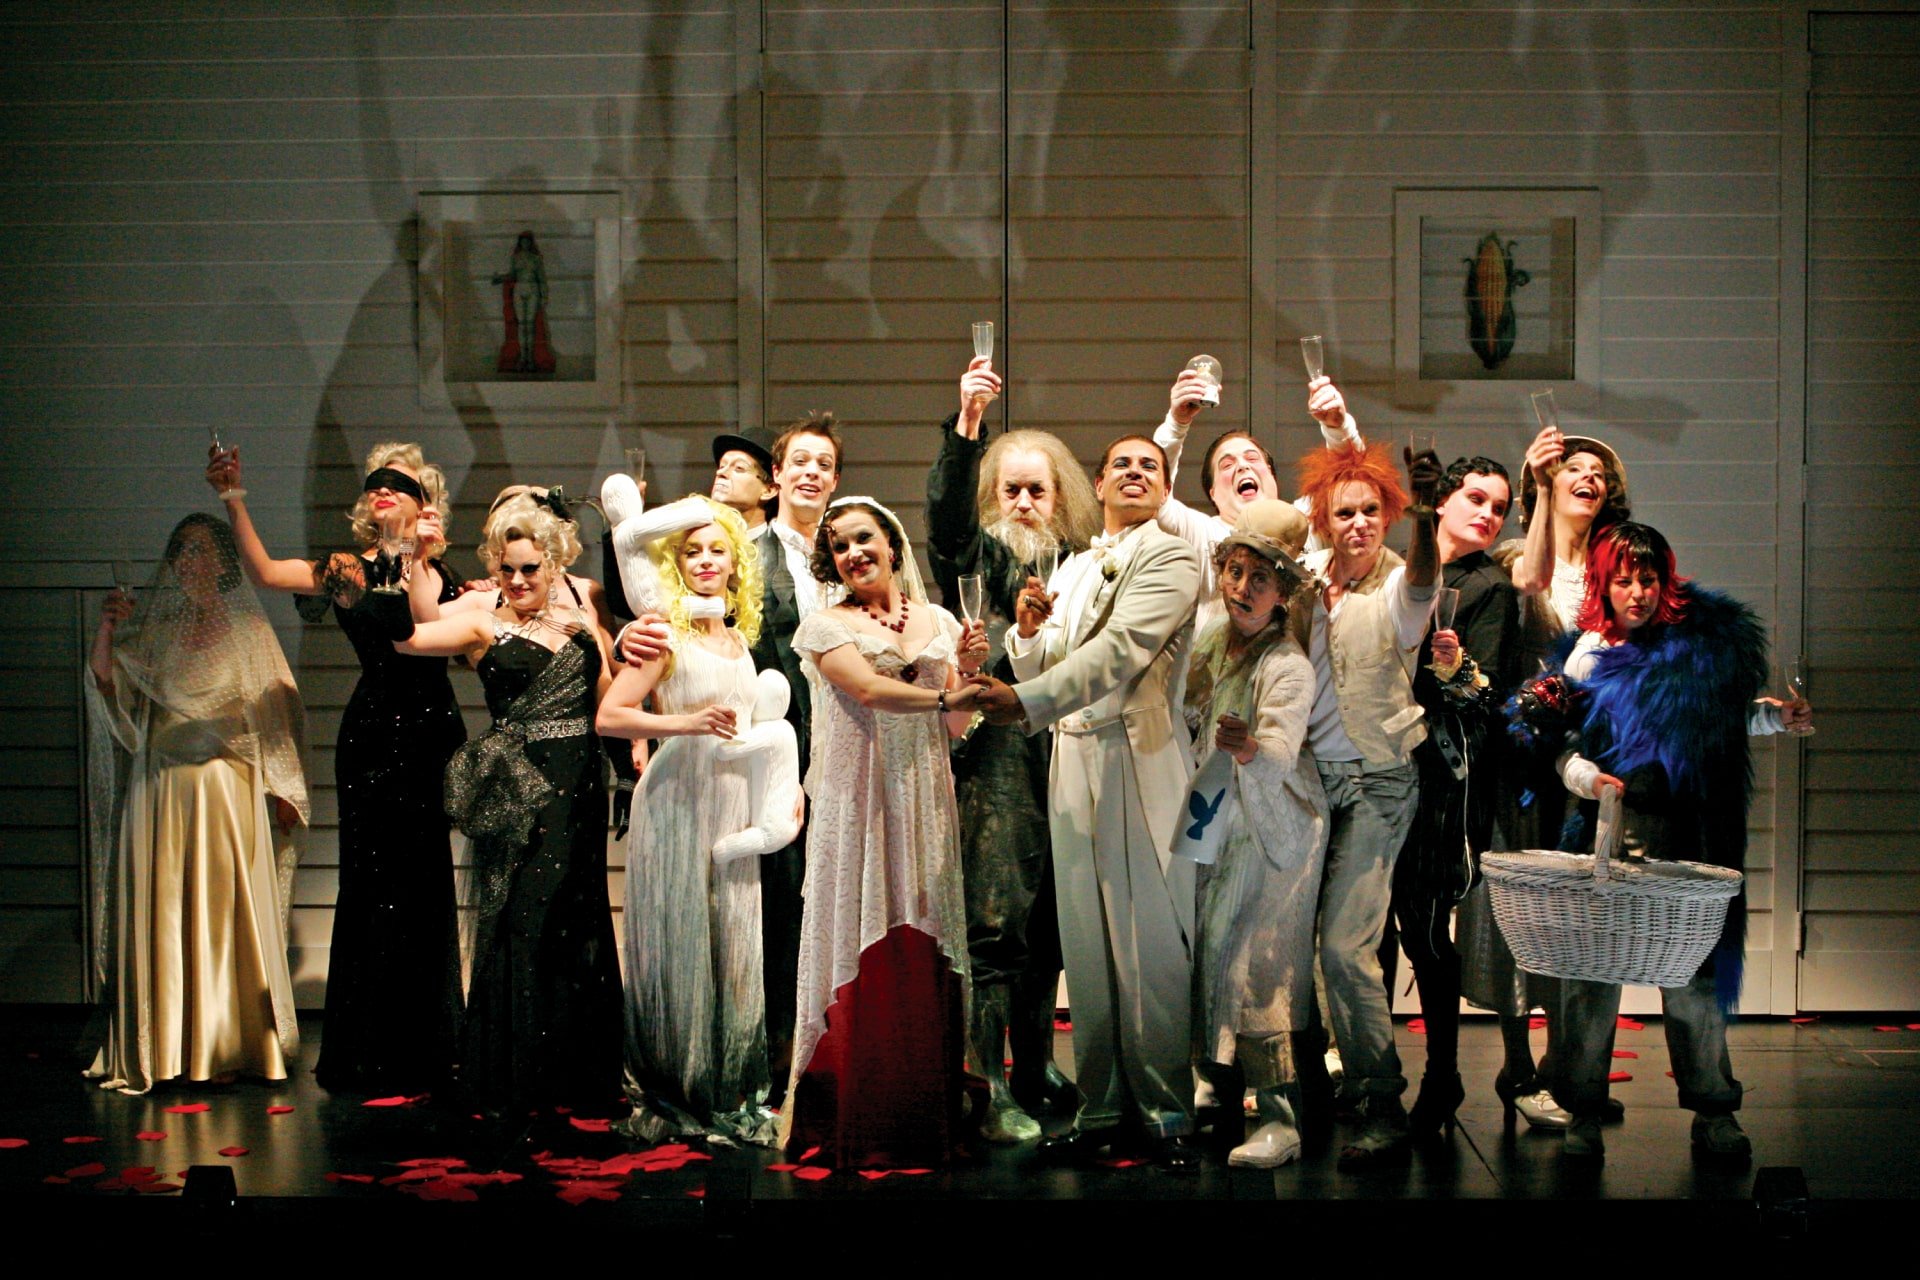 Company of actors raise toast at wedding, their towering shadows on the wall behind.